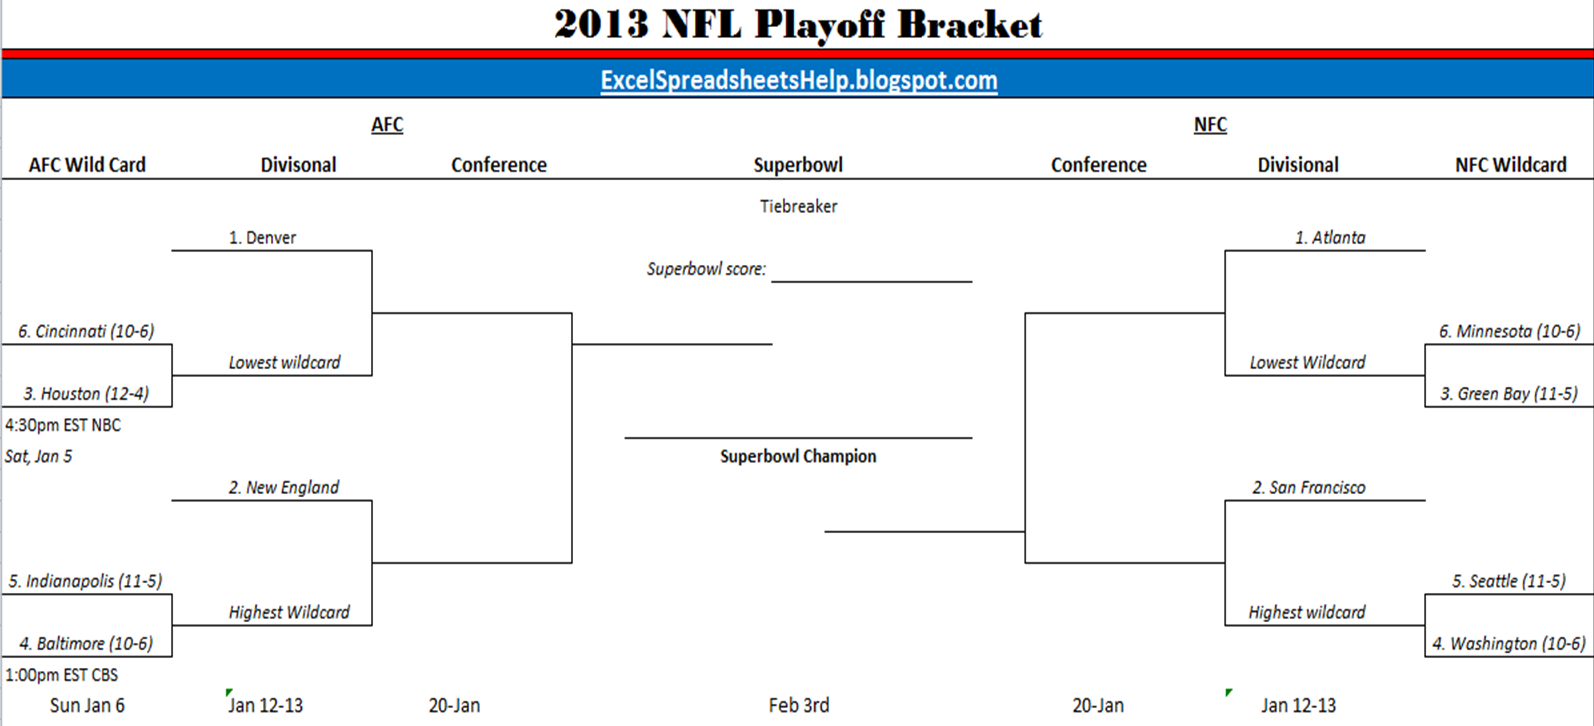 Nfl Playoff Bracket 2013 Printable - Clipart Library •